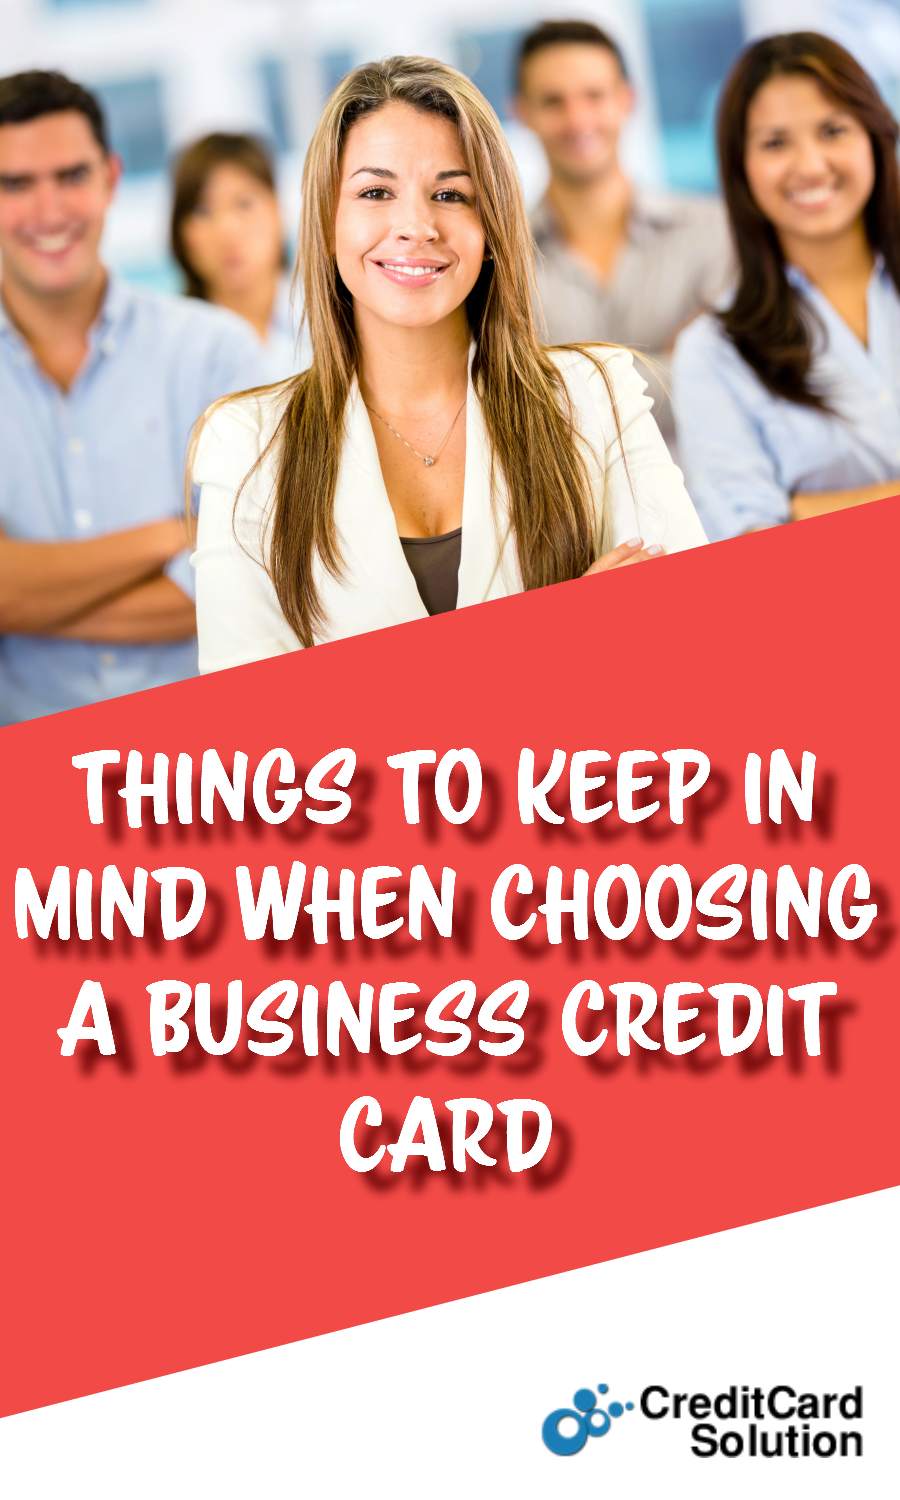 Things to Keep In Mind When Choosing a Business Credit Card